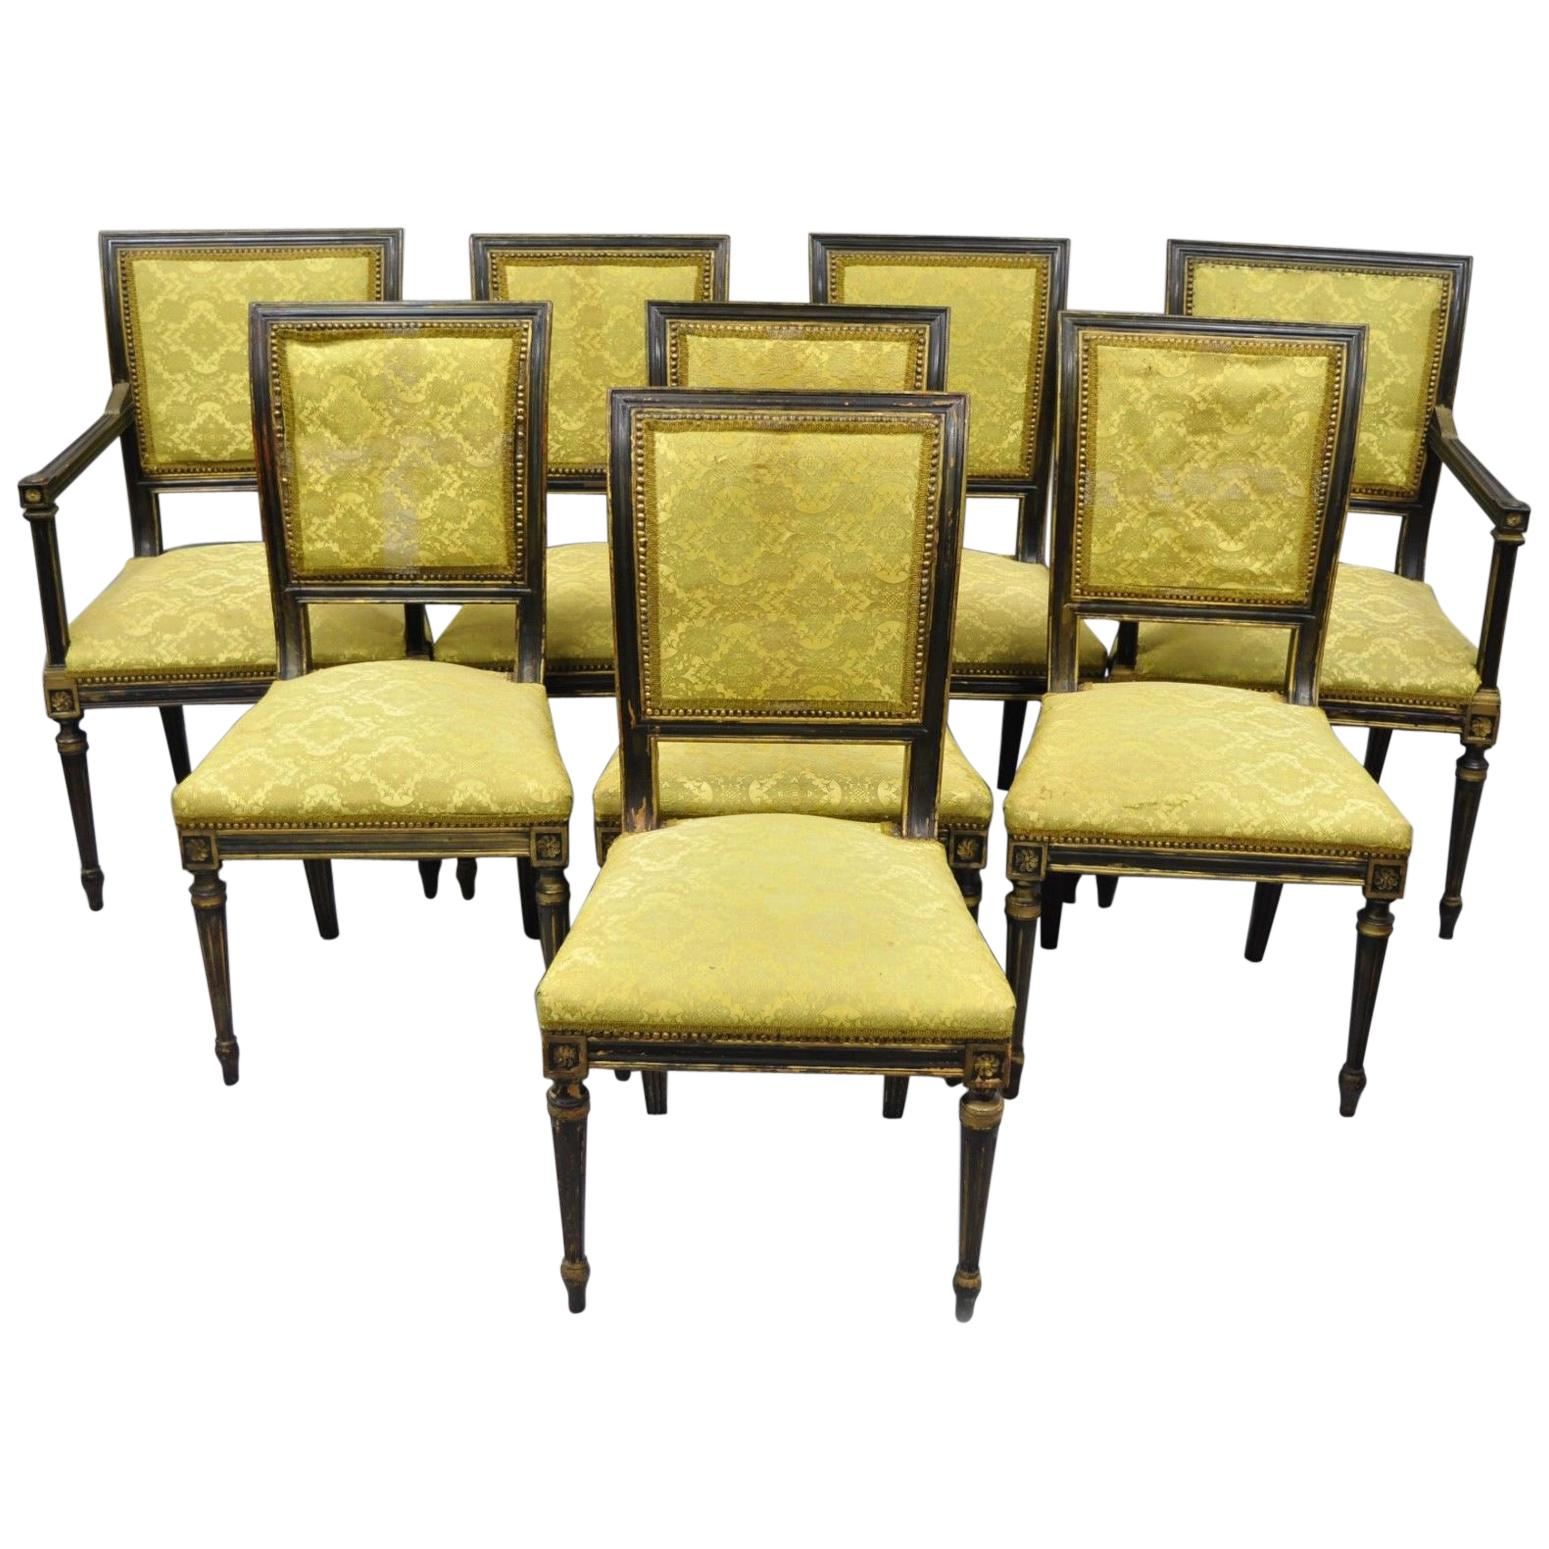 Eight French Regency Style Upholstered Square Back Dining Chairs